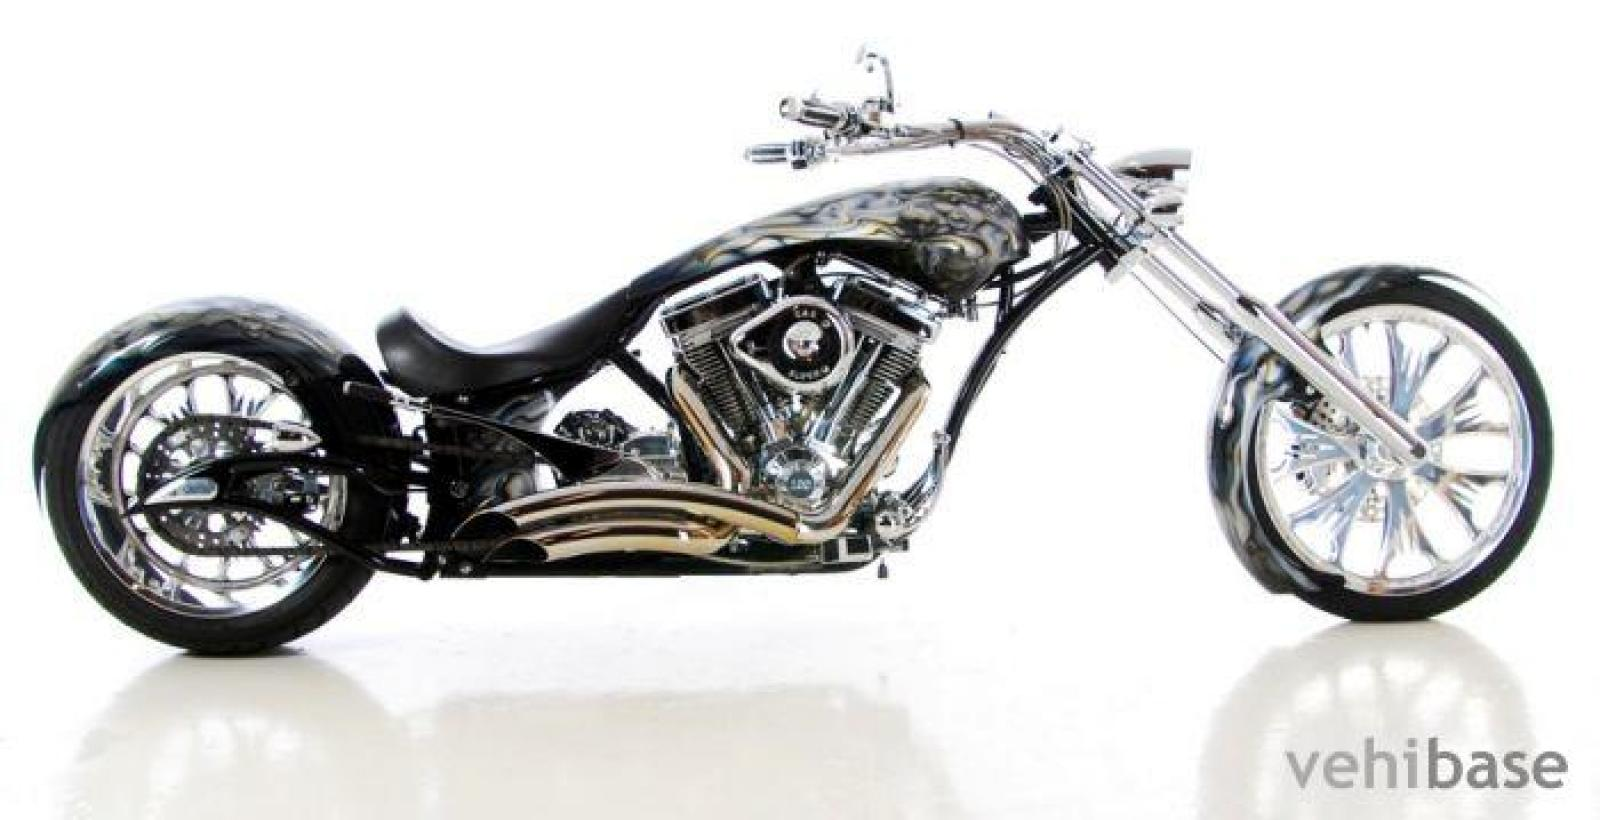 Big Bear Choppers Paradox 100 Smooth Carb 2010 images #63682